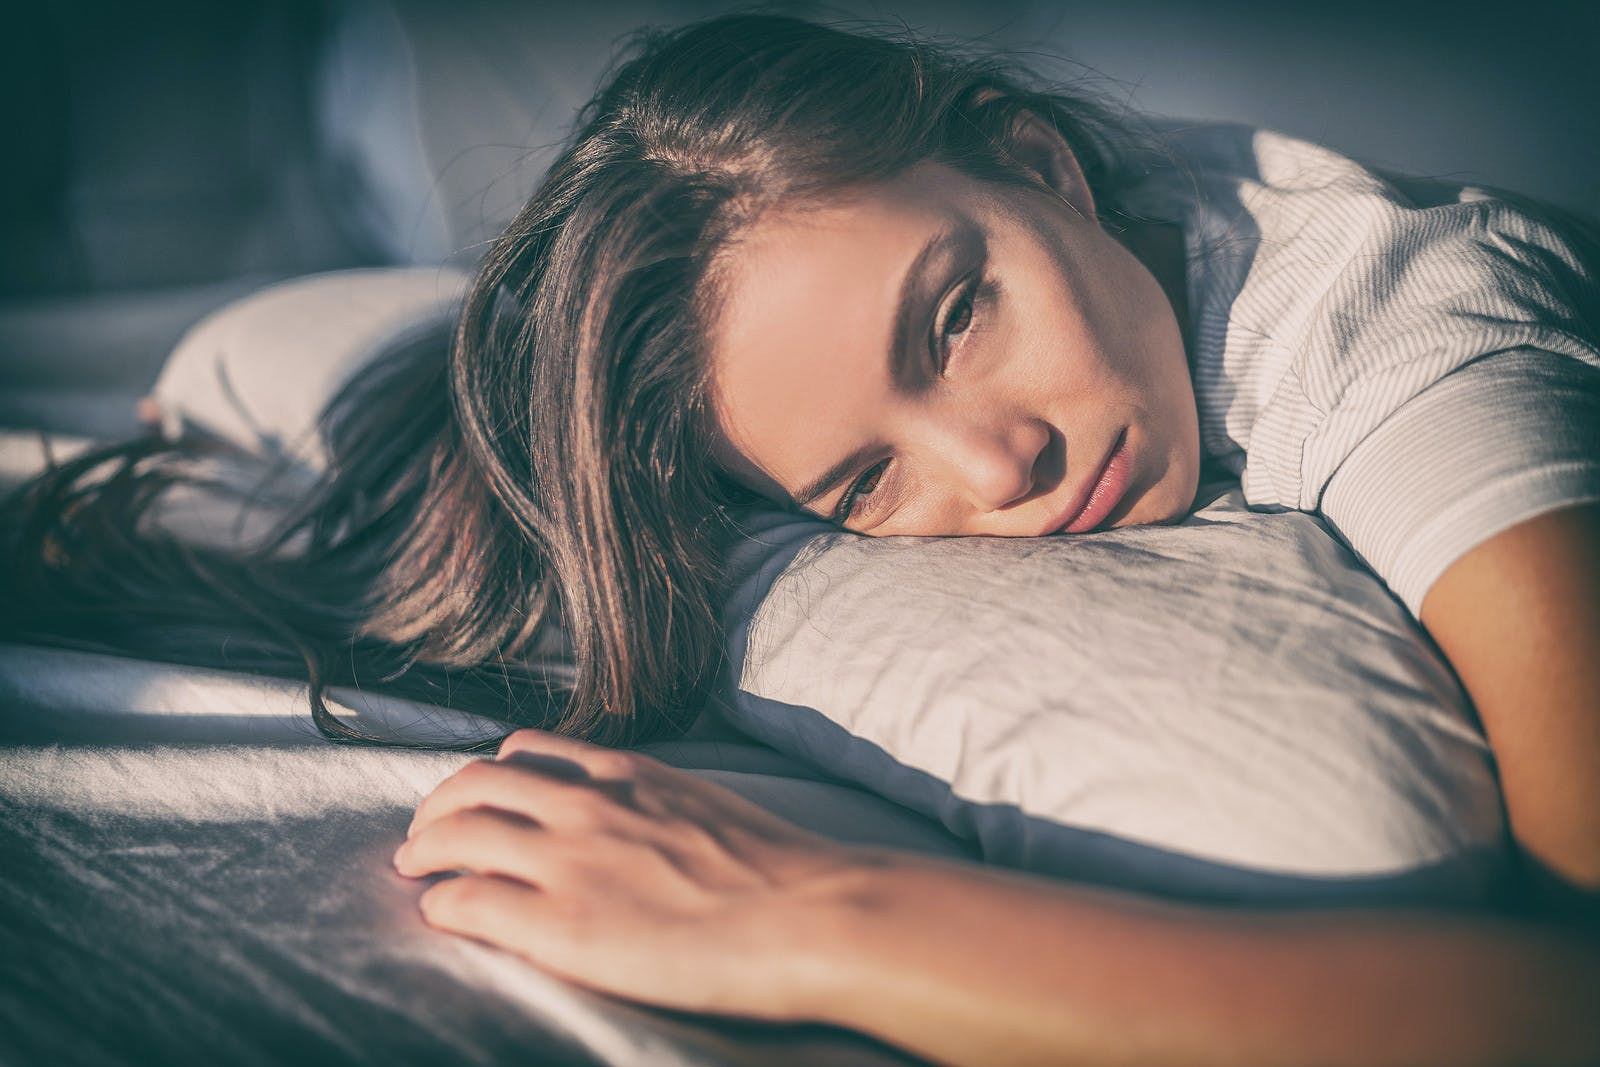 Woman in bed with fatigue feels bad after COVID-19